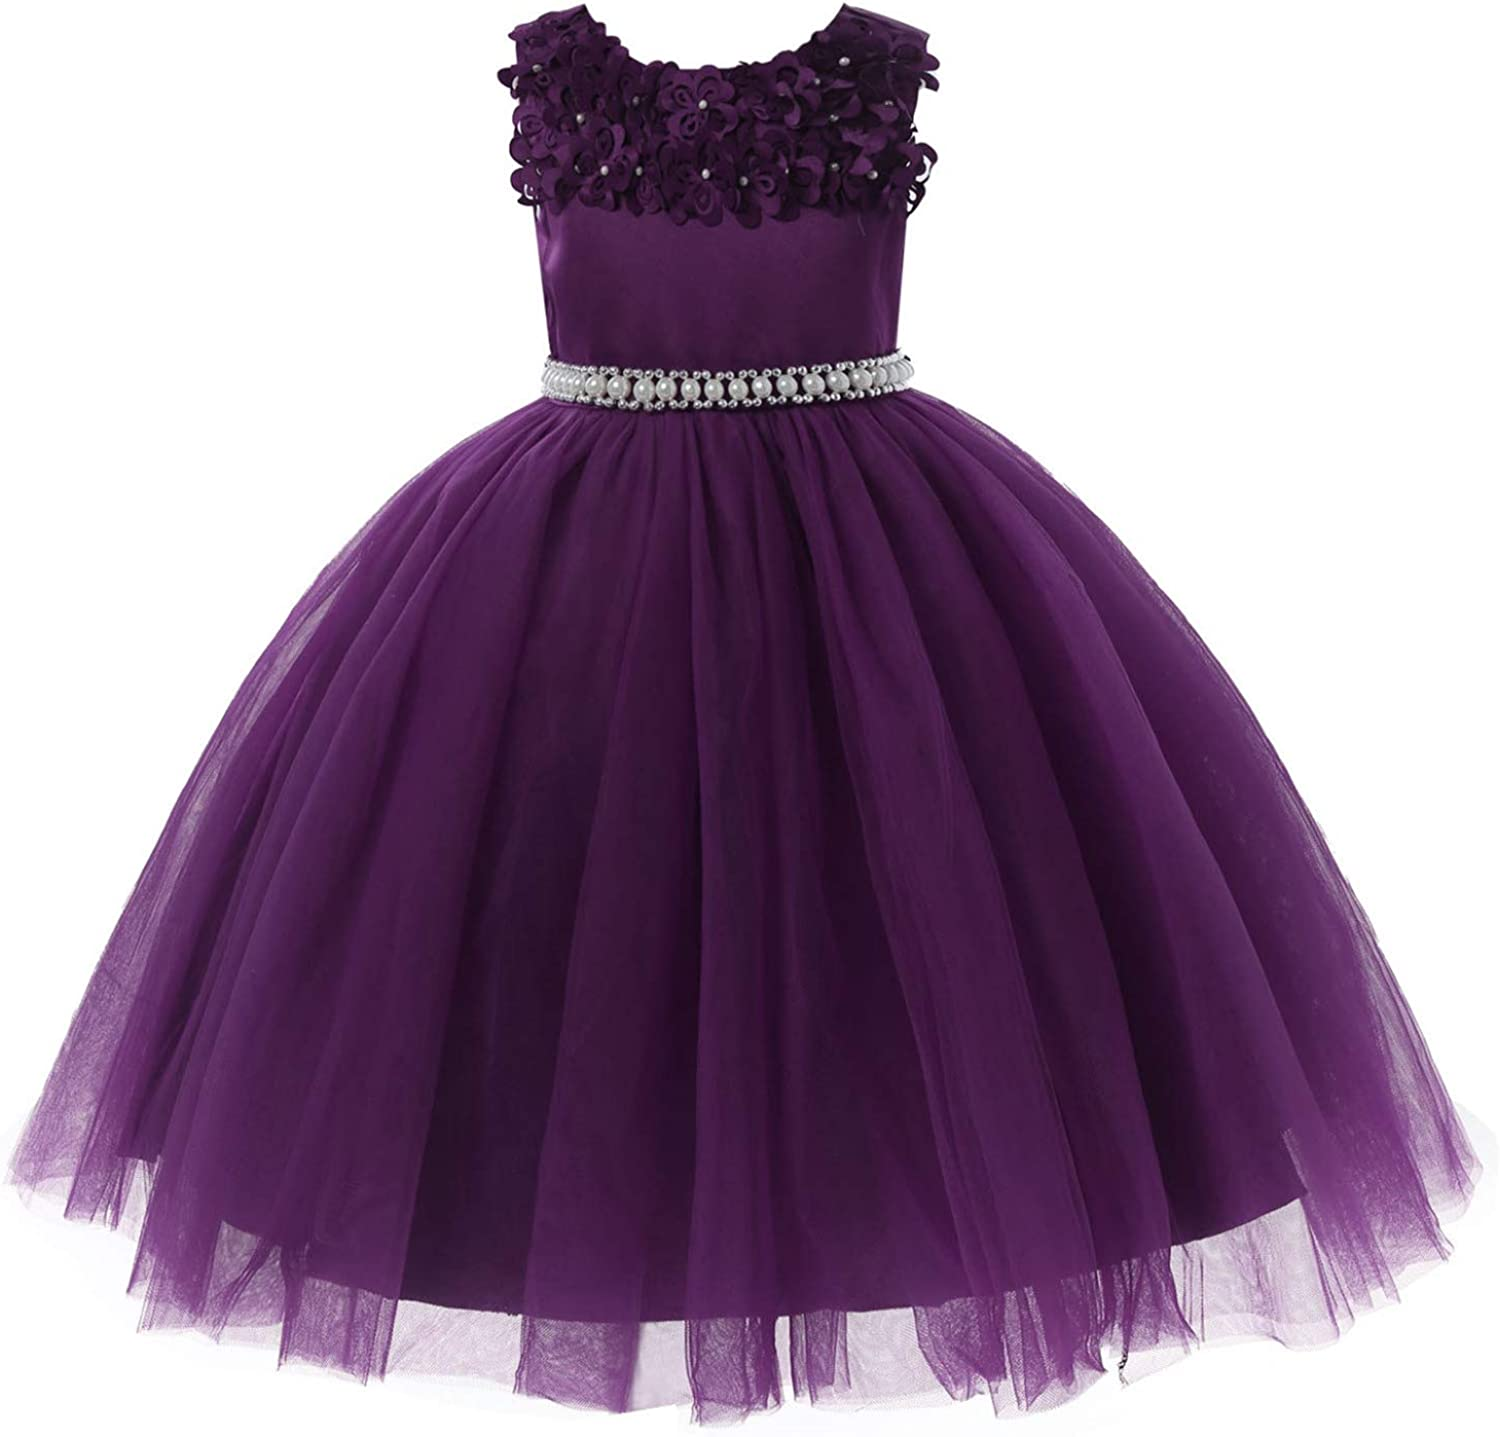 CHICTRY Kids Girls Elegant 3D Flower Embroidery Tutu Gown Wedding Birthday Party Dresses